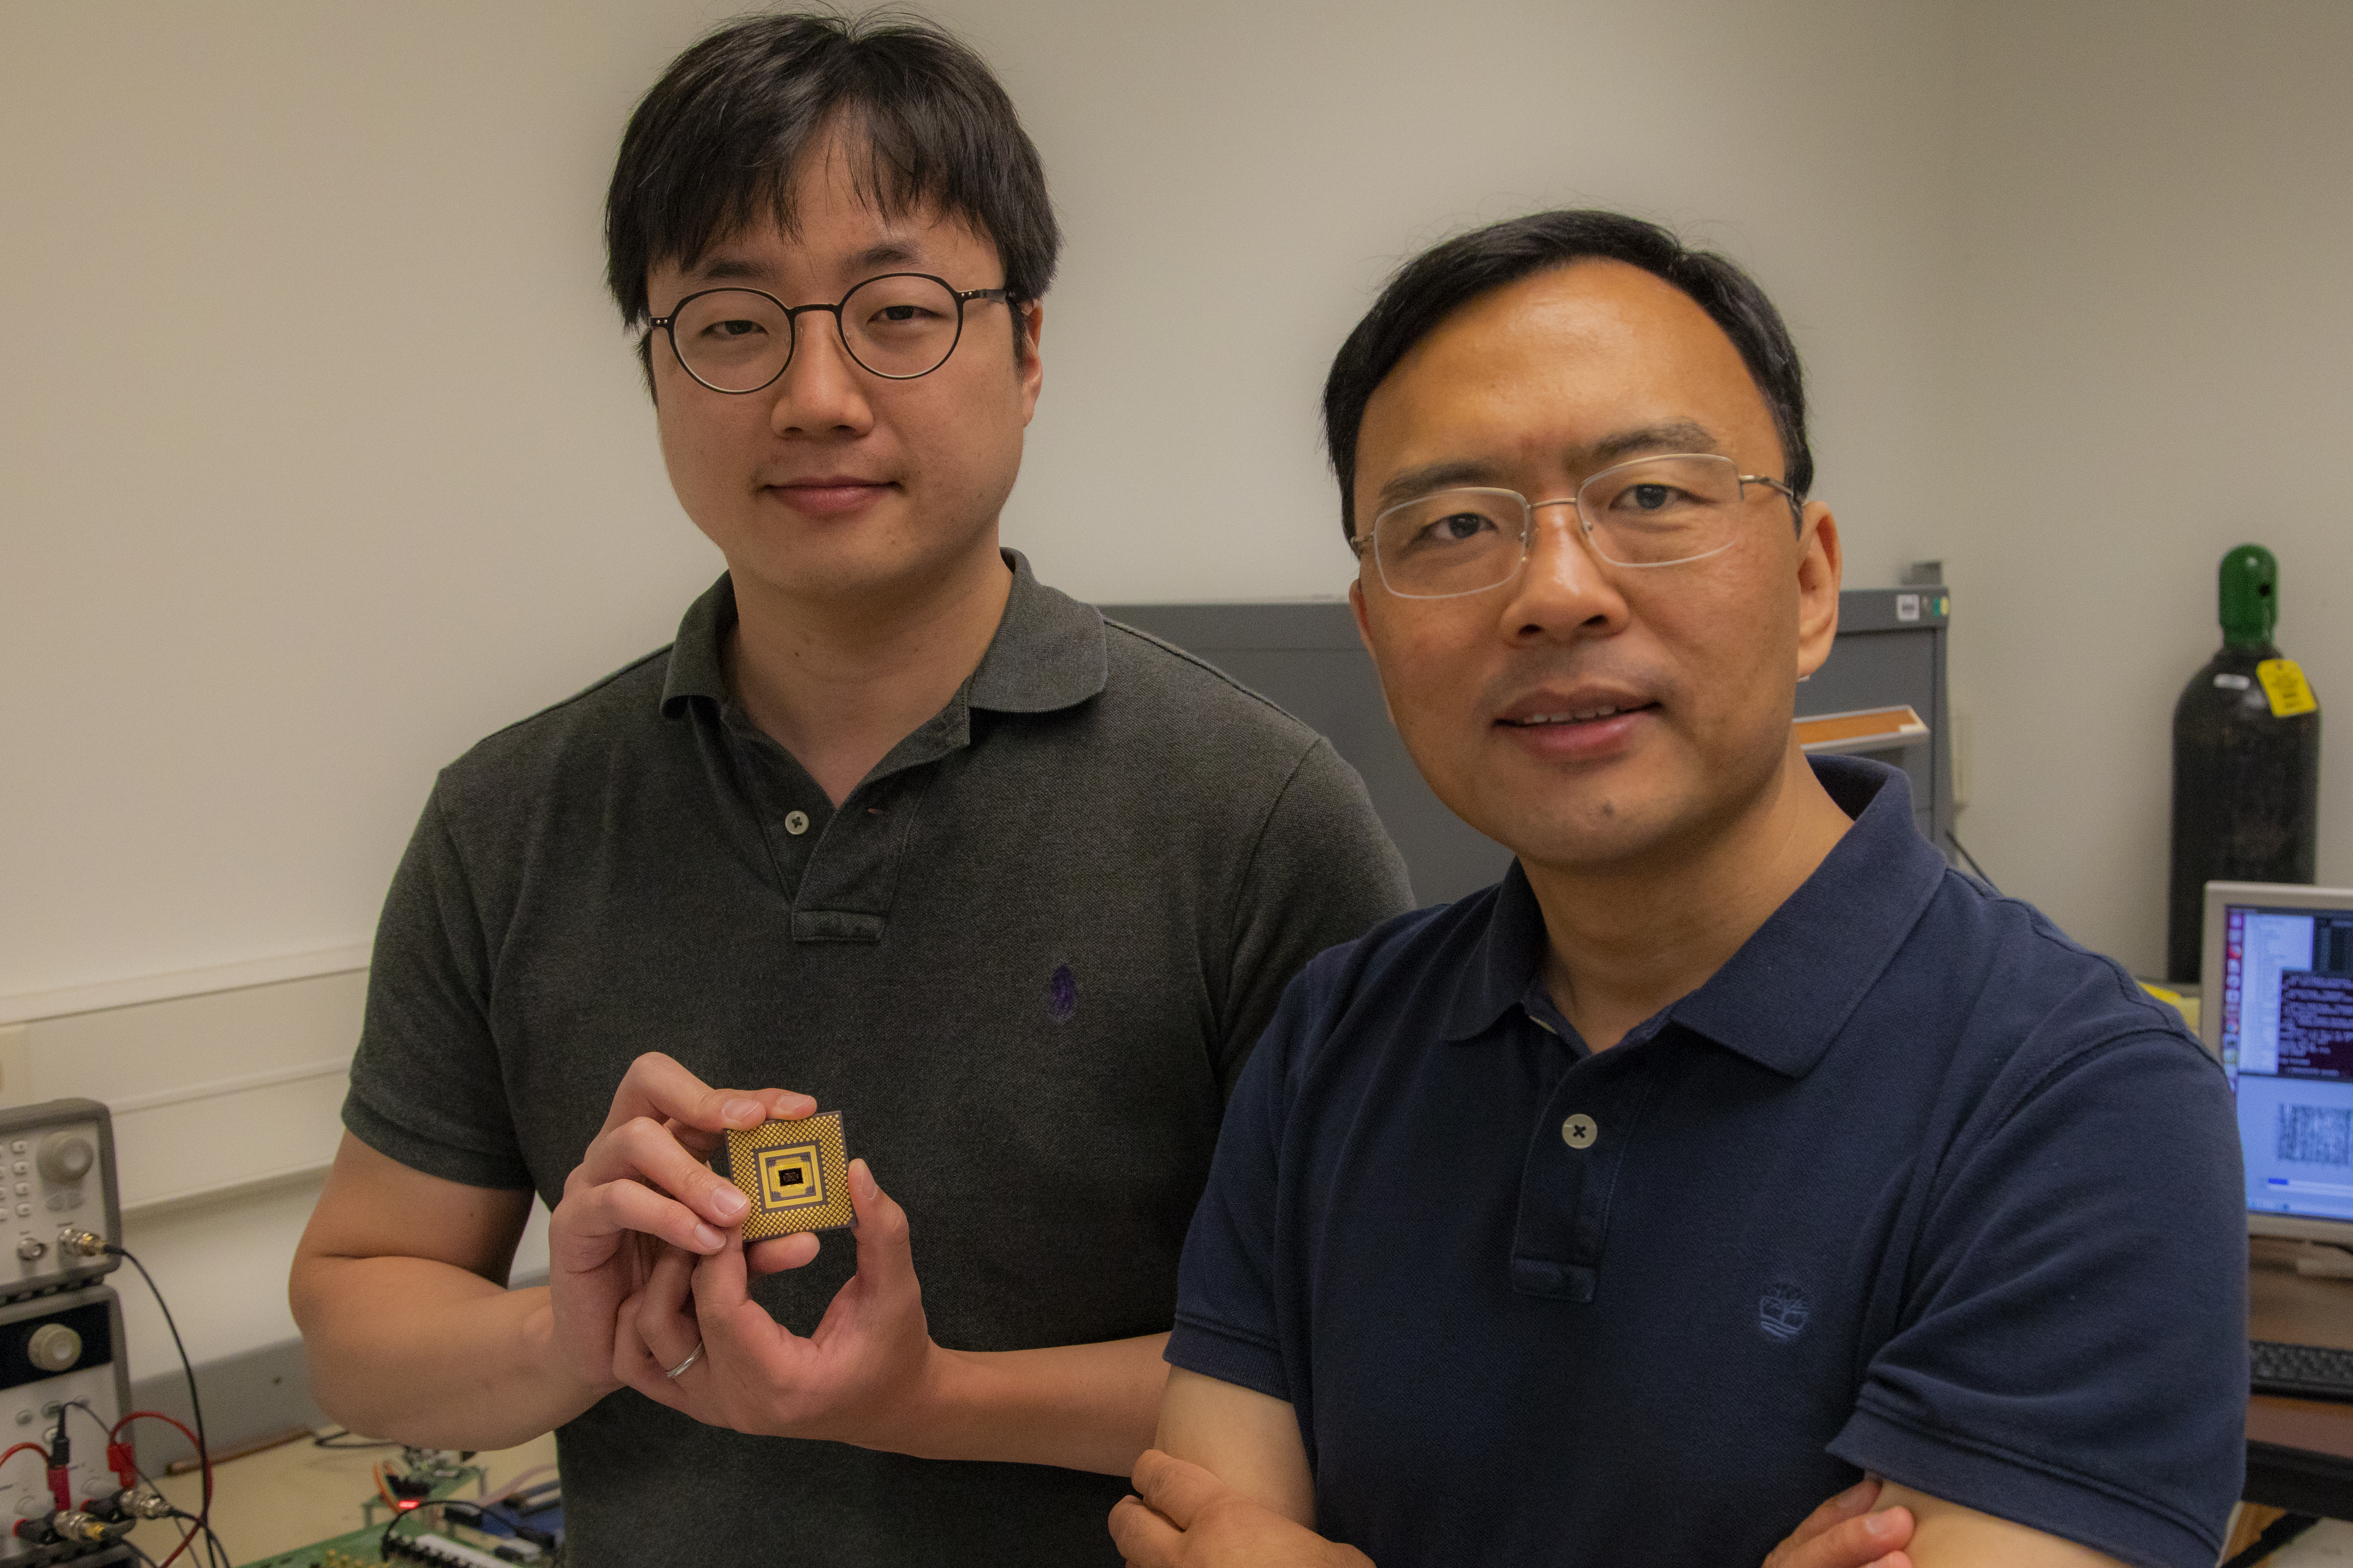 Wei Lu stands with first author Seung Hwan Lee, an electrical engineering PhD student, who holds the memristor array. Image credit: Robert Coelius, Michigan Engineering